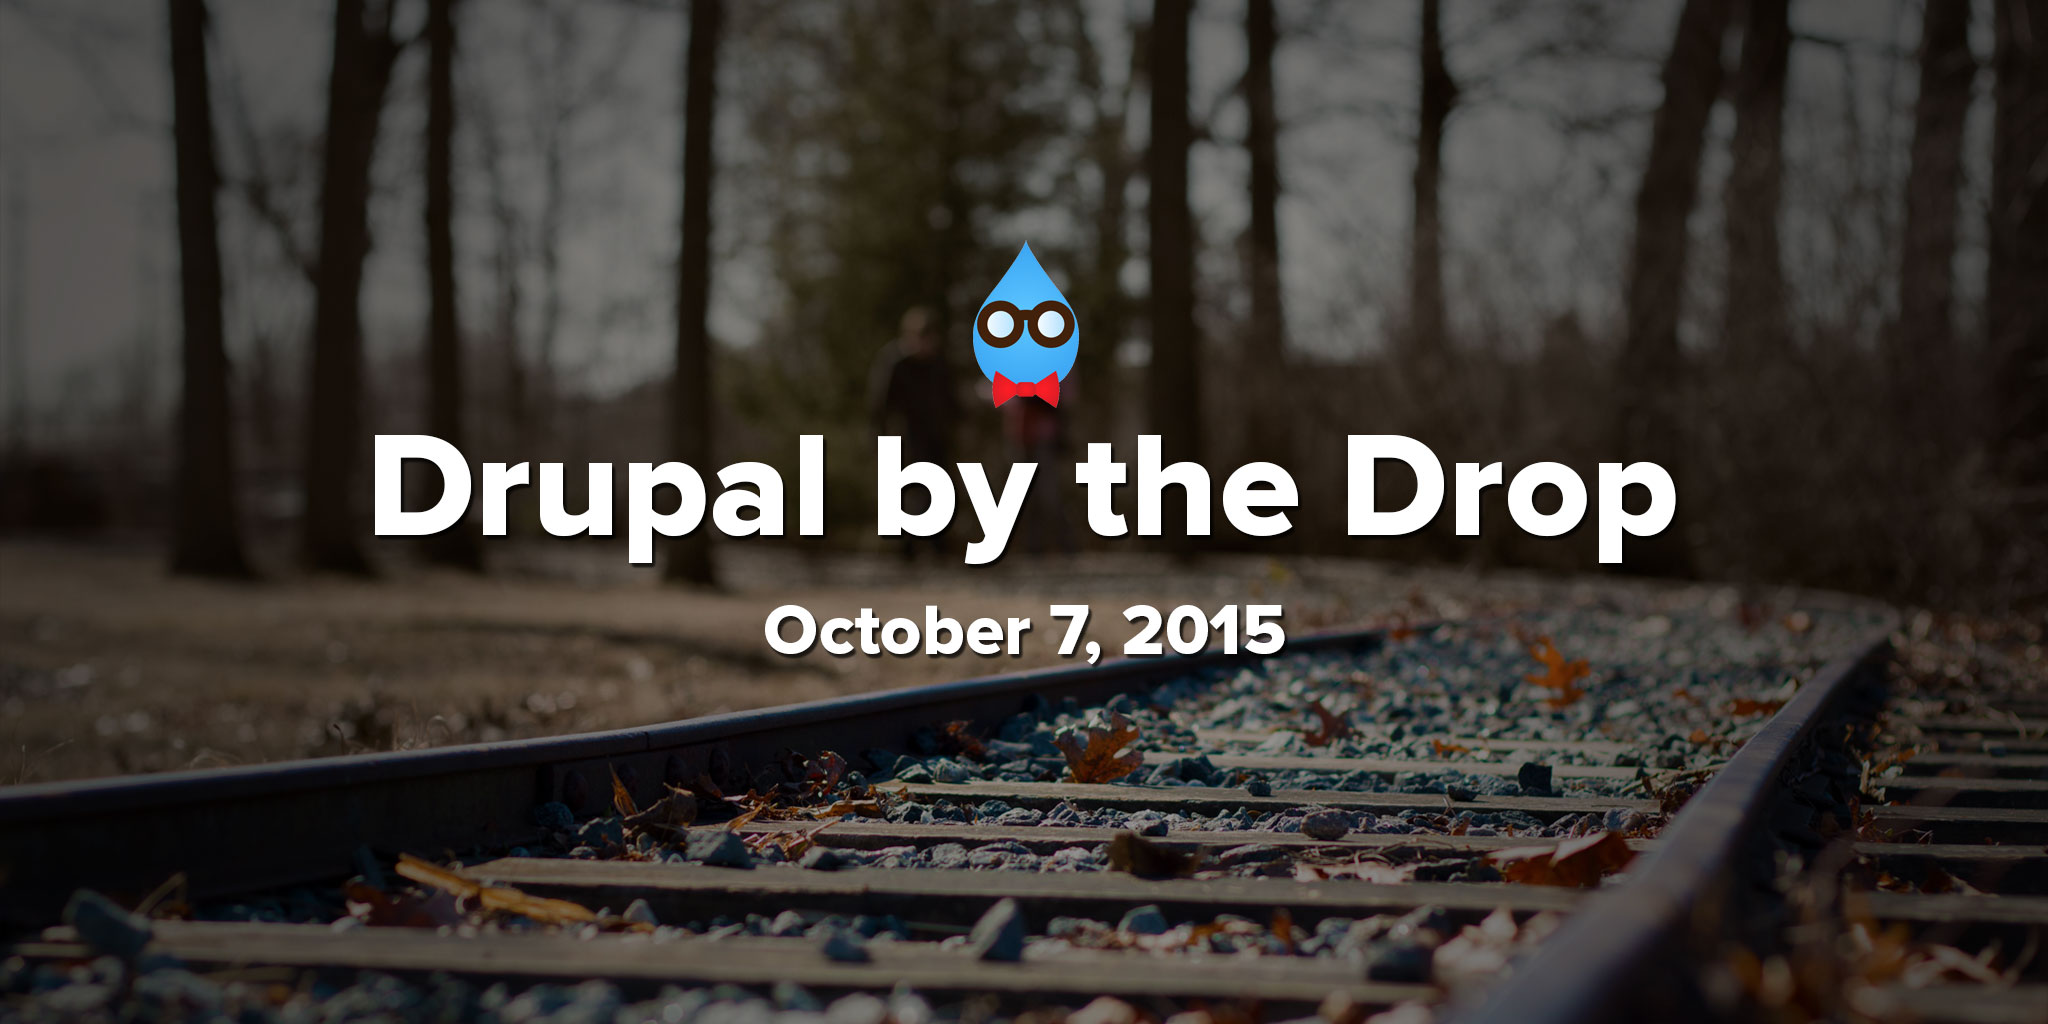 Drupal by the Drop: October 7, 2015